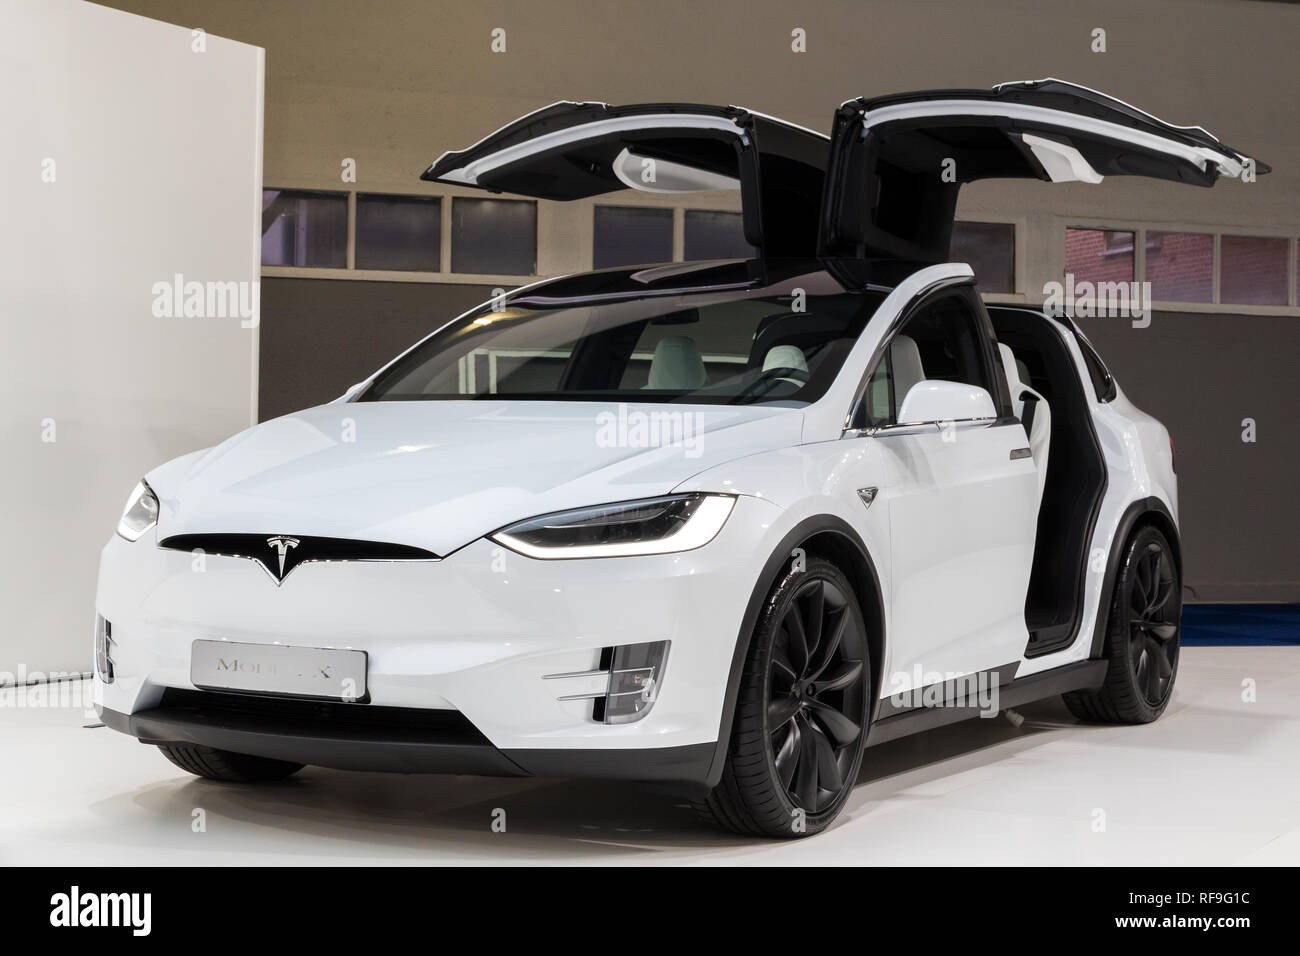 Brussels Jan 18 2019 Tesla Model X Electric Luxury Crossover Suv Car Showcased At The 97th Brussels Motor Show 2019 Autosalon Stock Photo Alamy